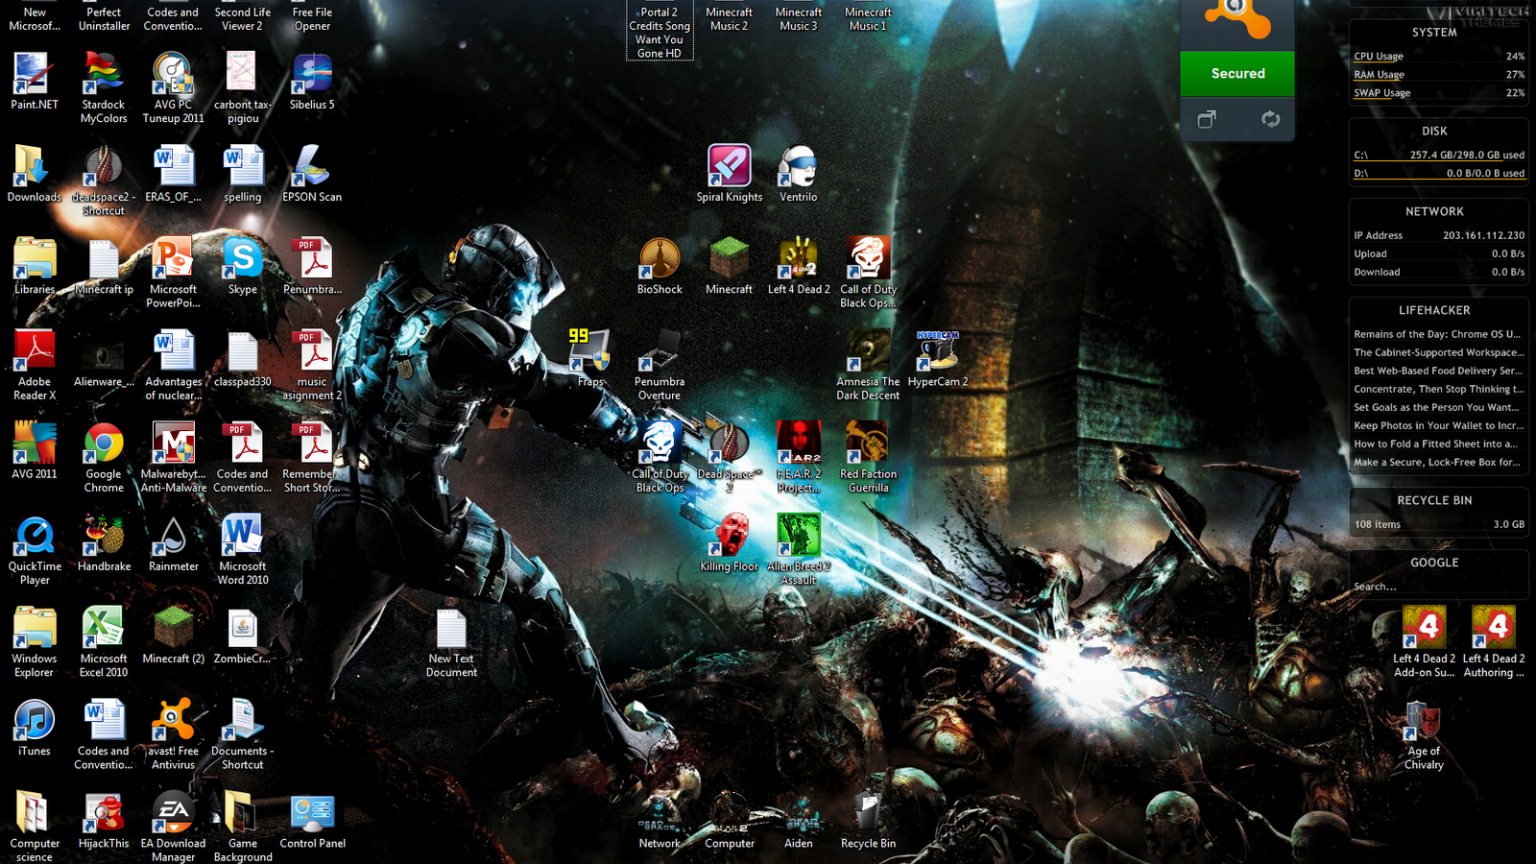 Download Next one is a chrome theme Its fairly basic but still looks